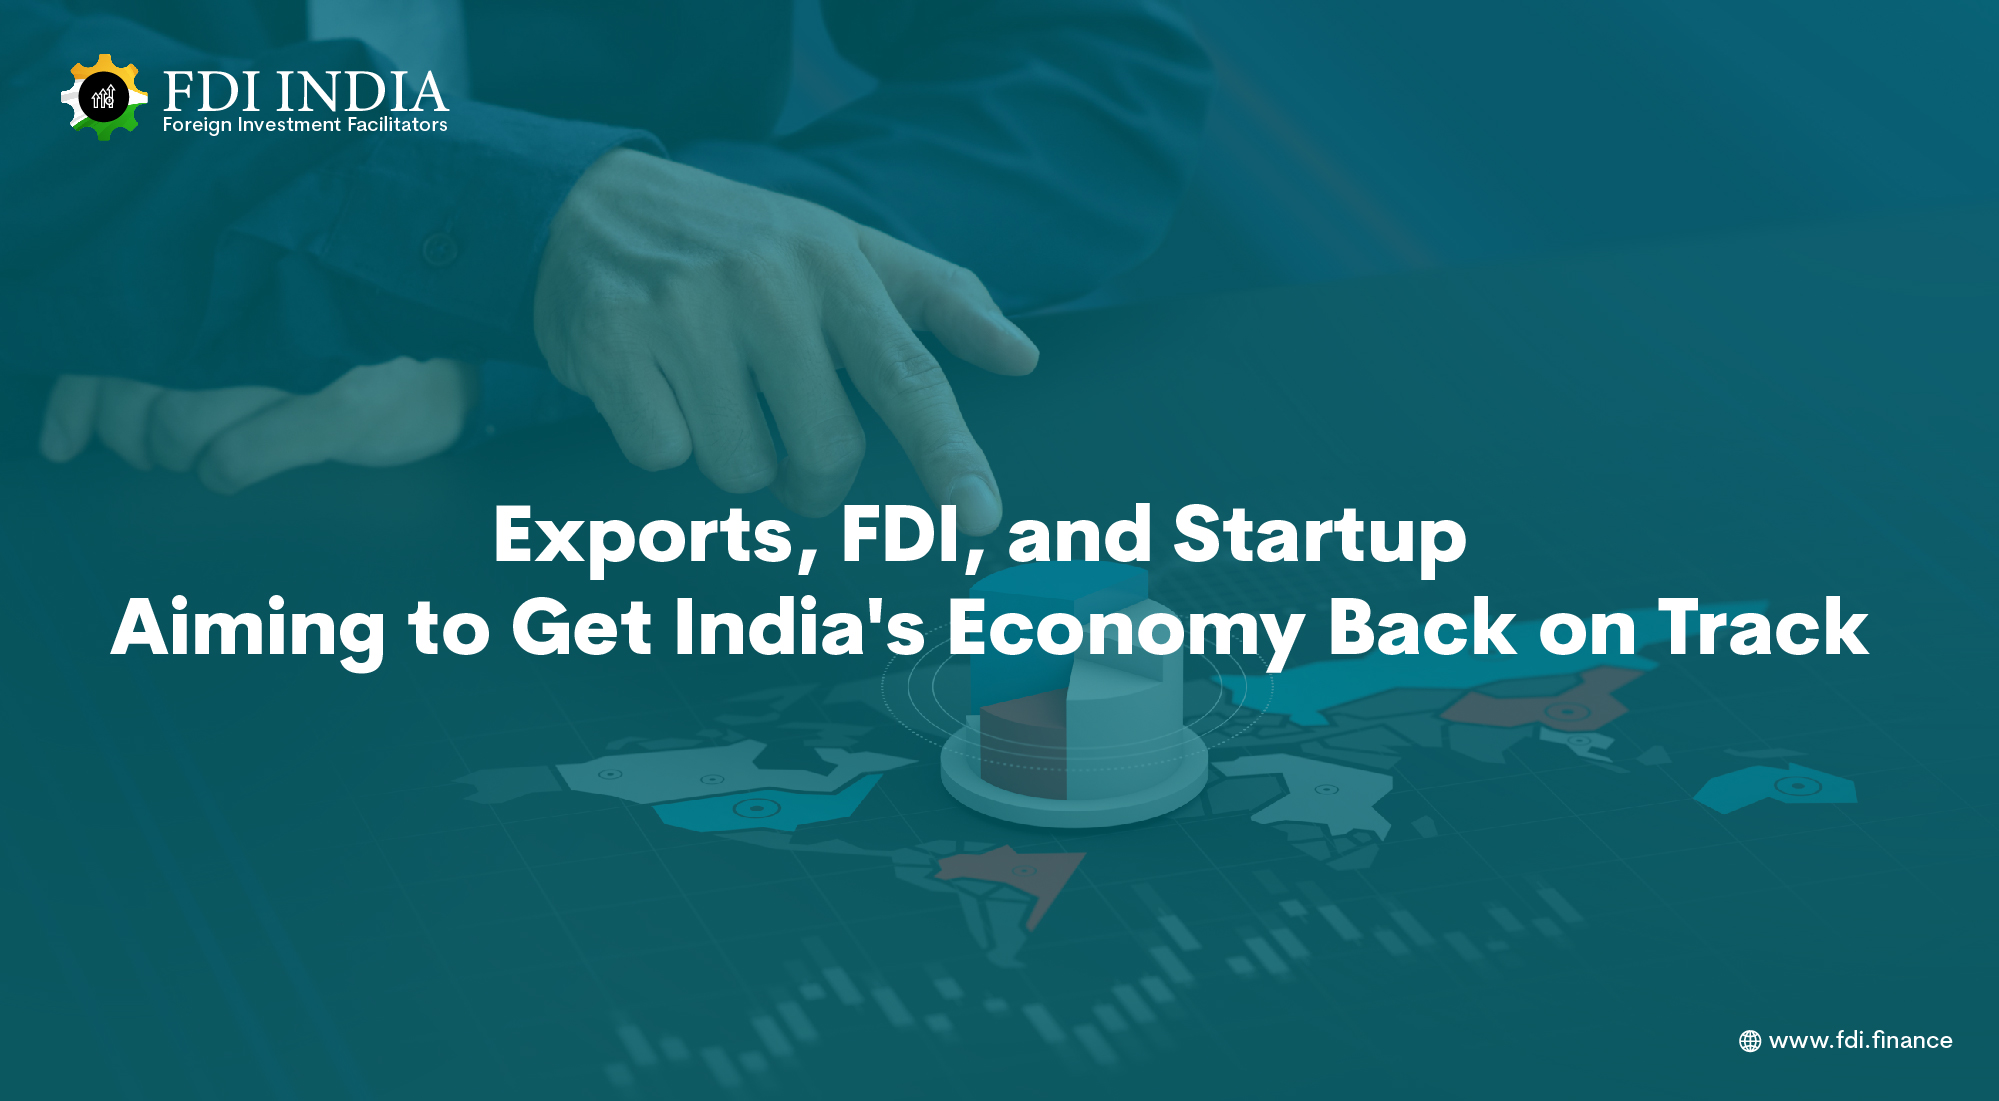 Exports, FDI, and Startup Aiming to Get India's Economy Back on Track